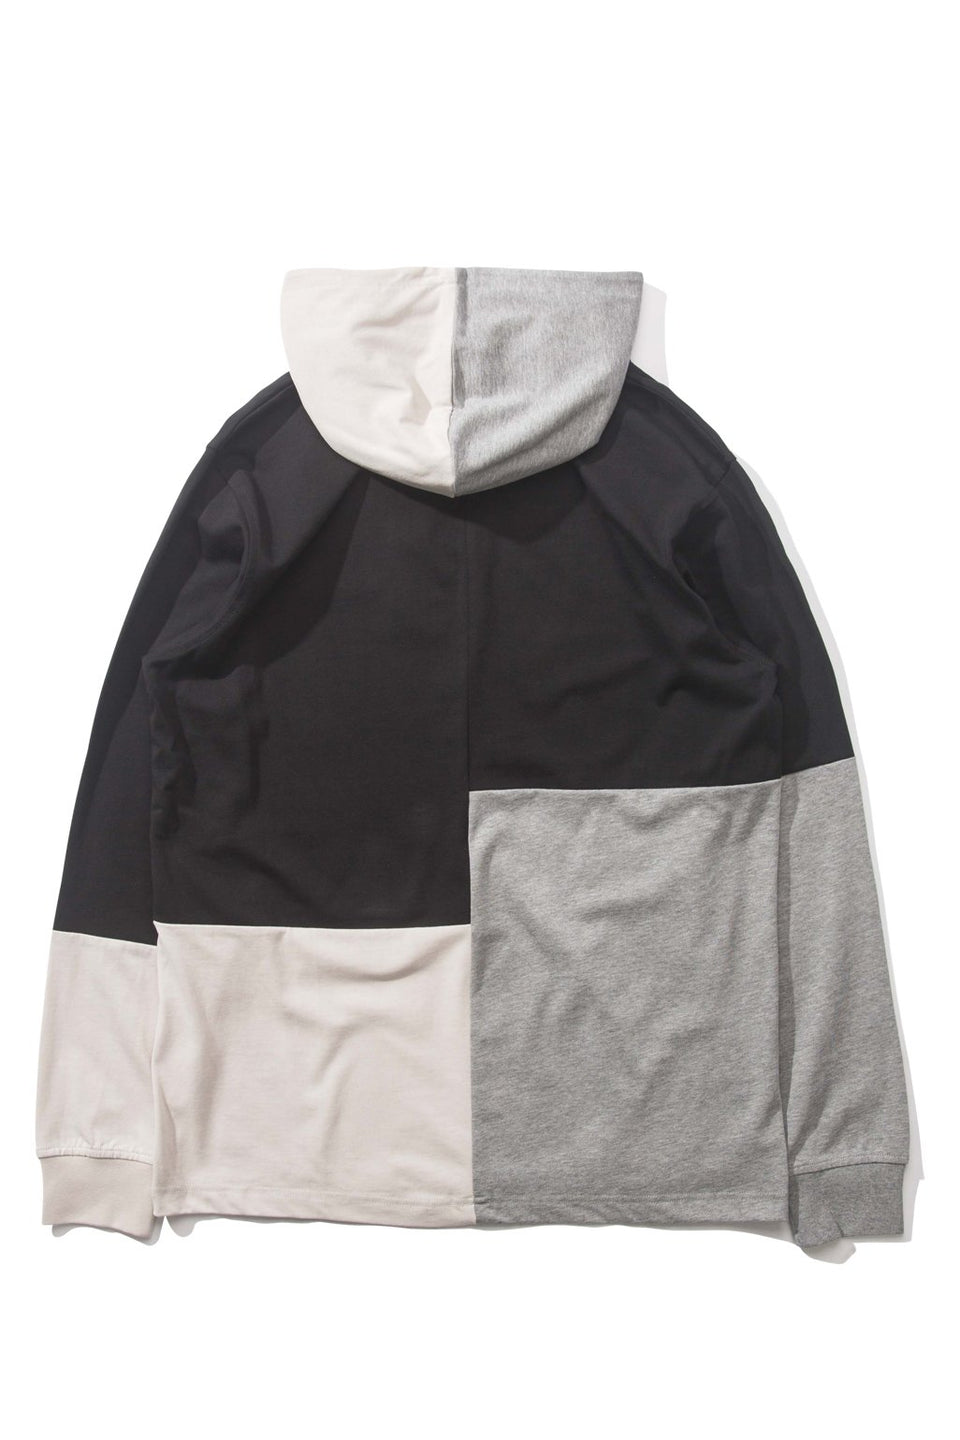 Abstract Hooded L/S Shirt